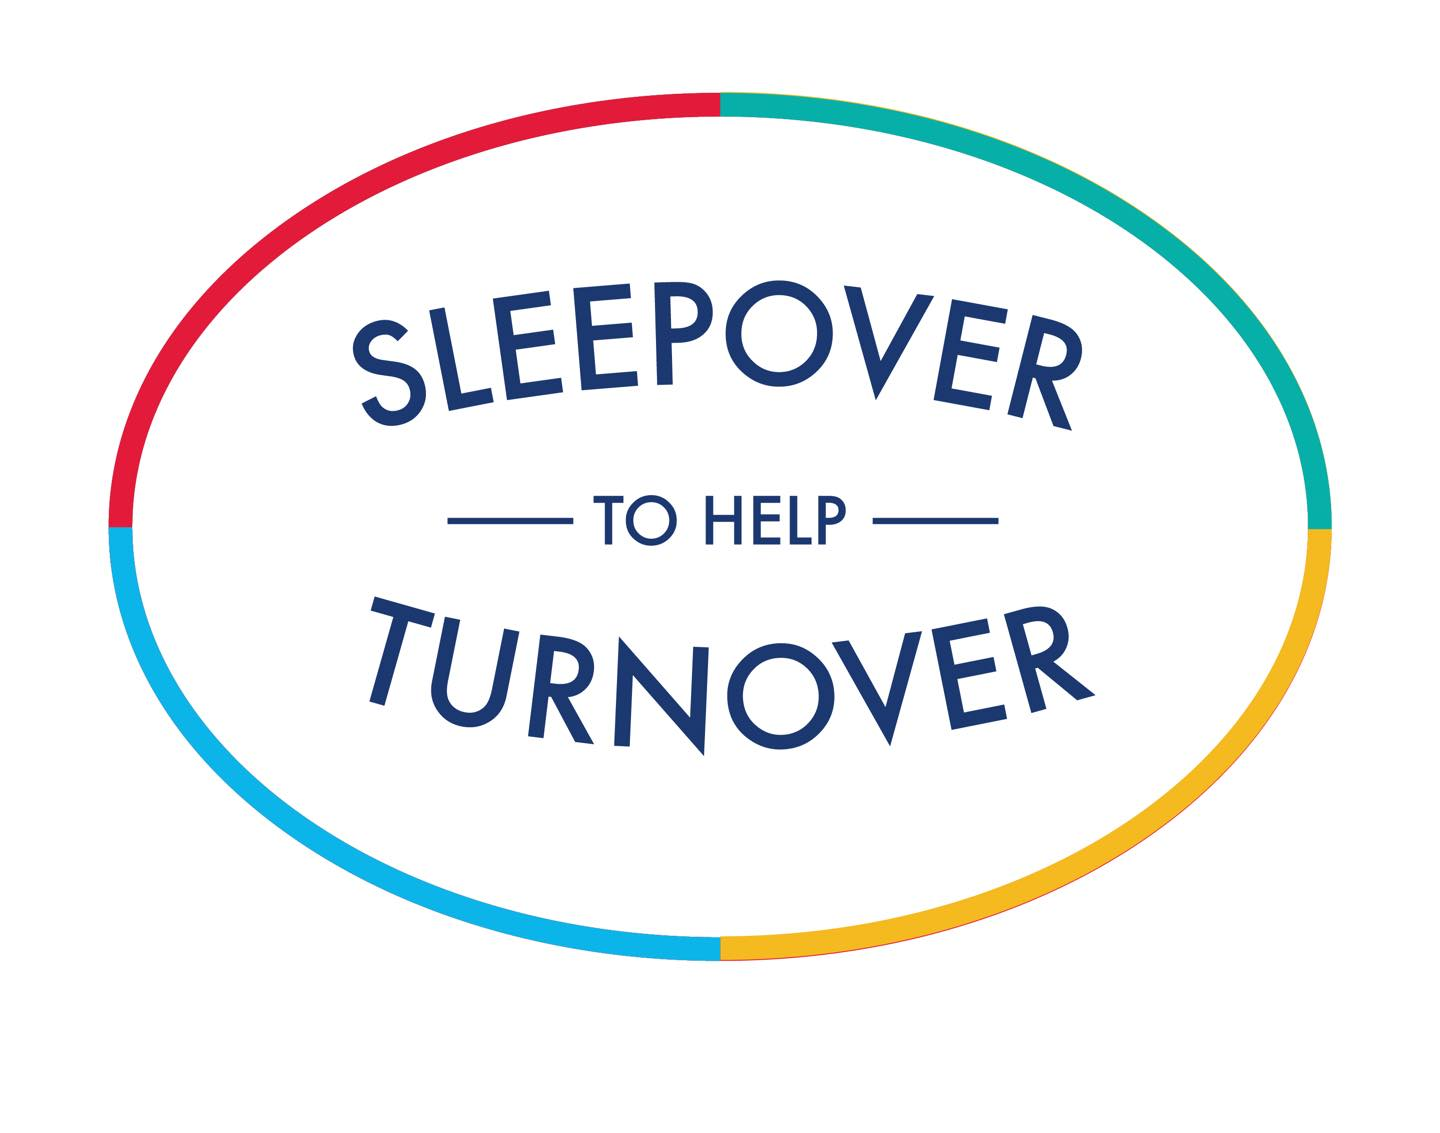 sleep over to help turnover